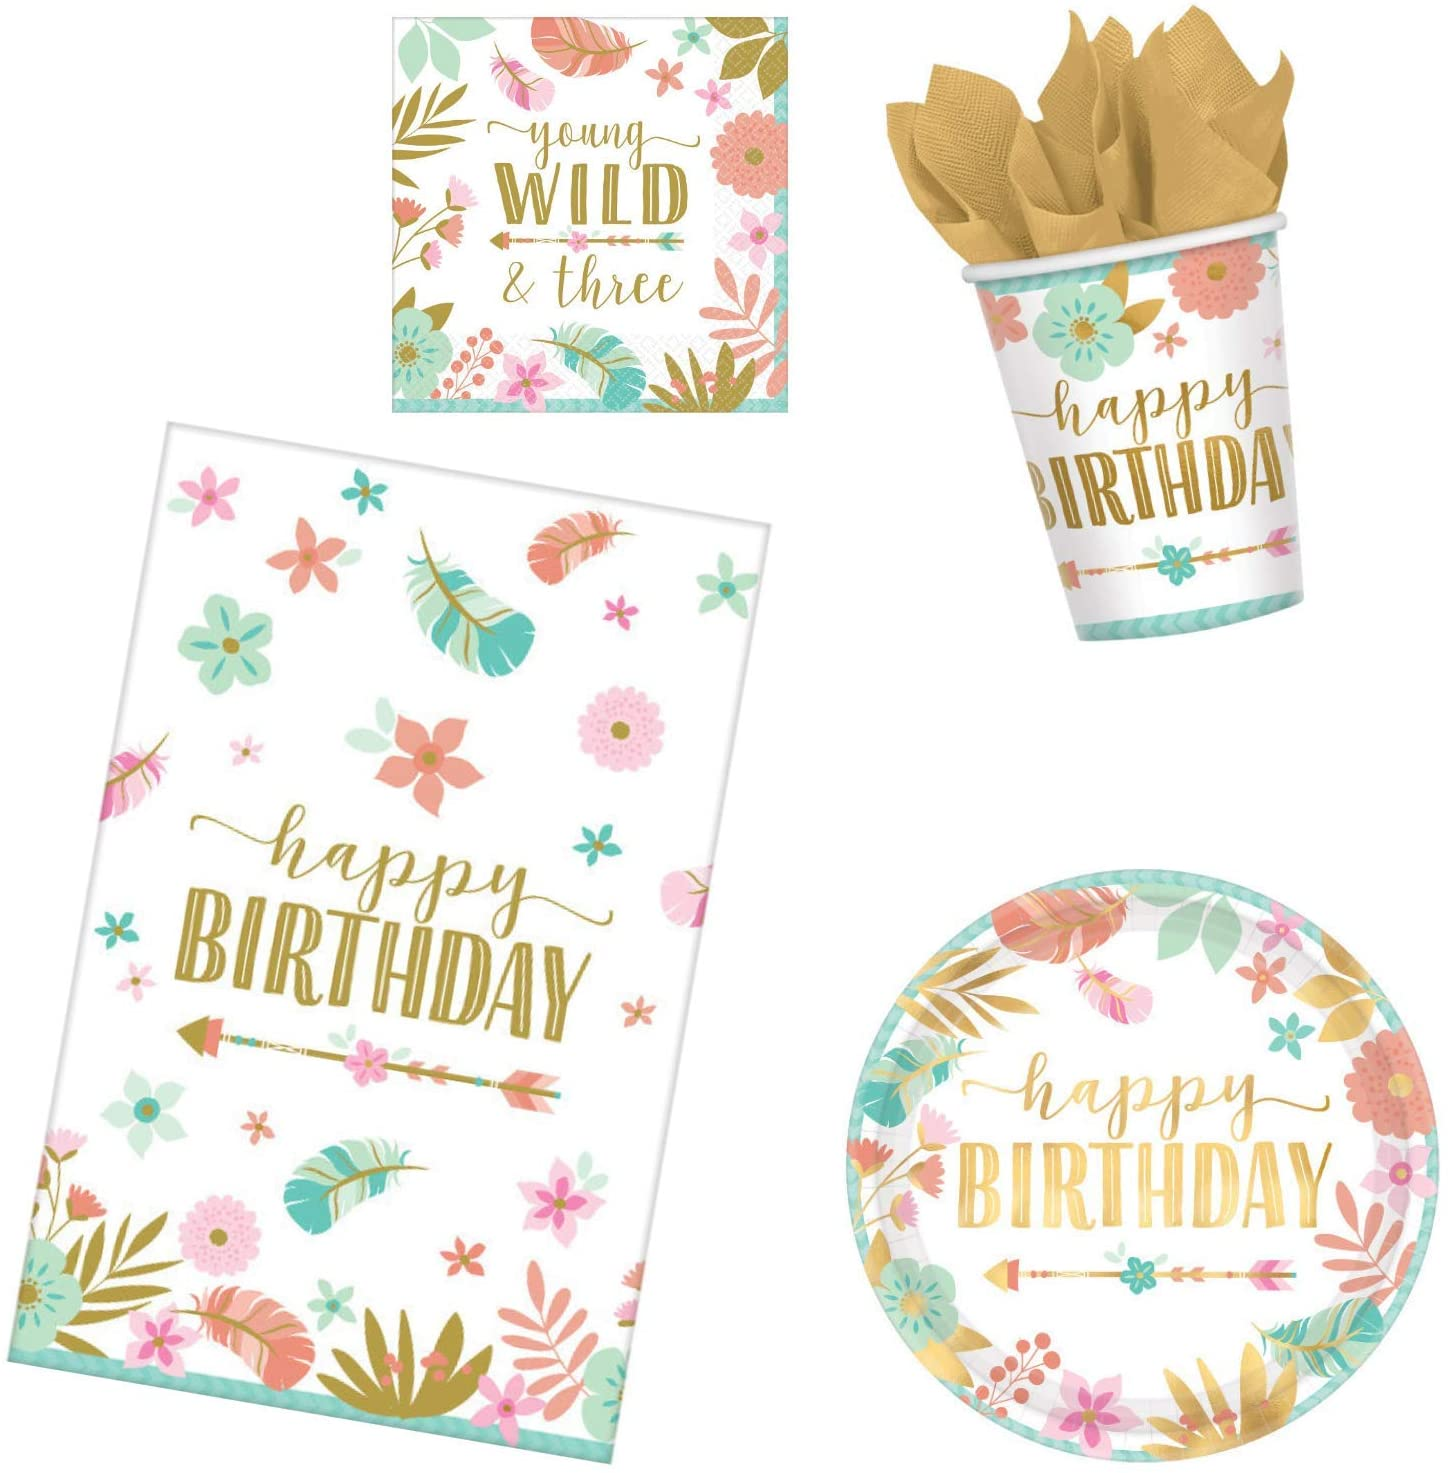 BOHO 3rd Birthday Party Supplies Pack for 16 Guests | Girl Young Wild and Three Theme